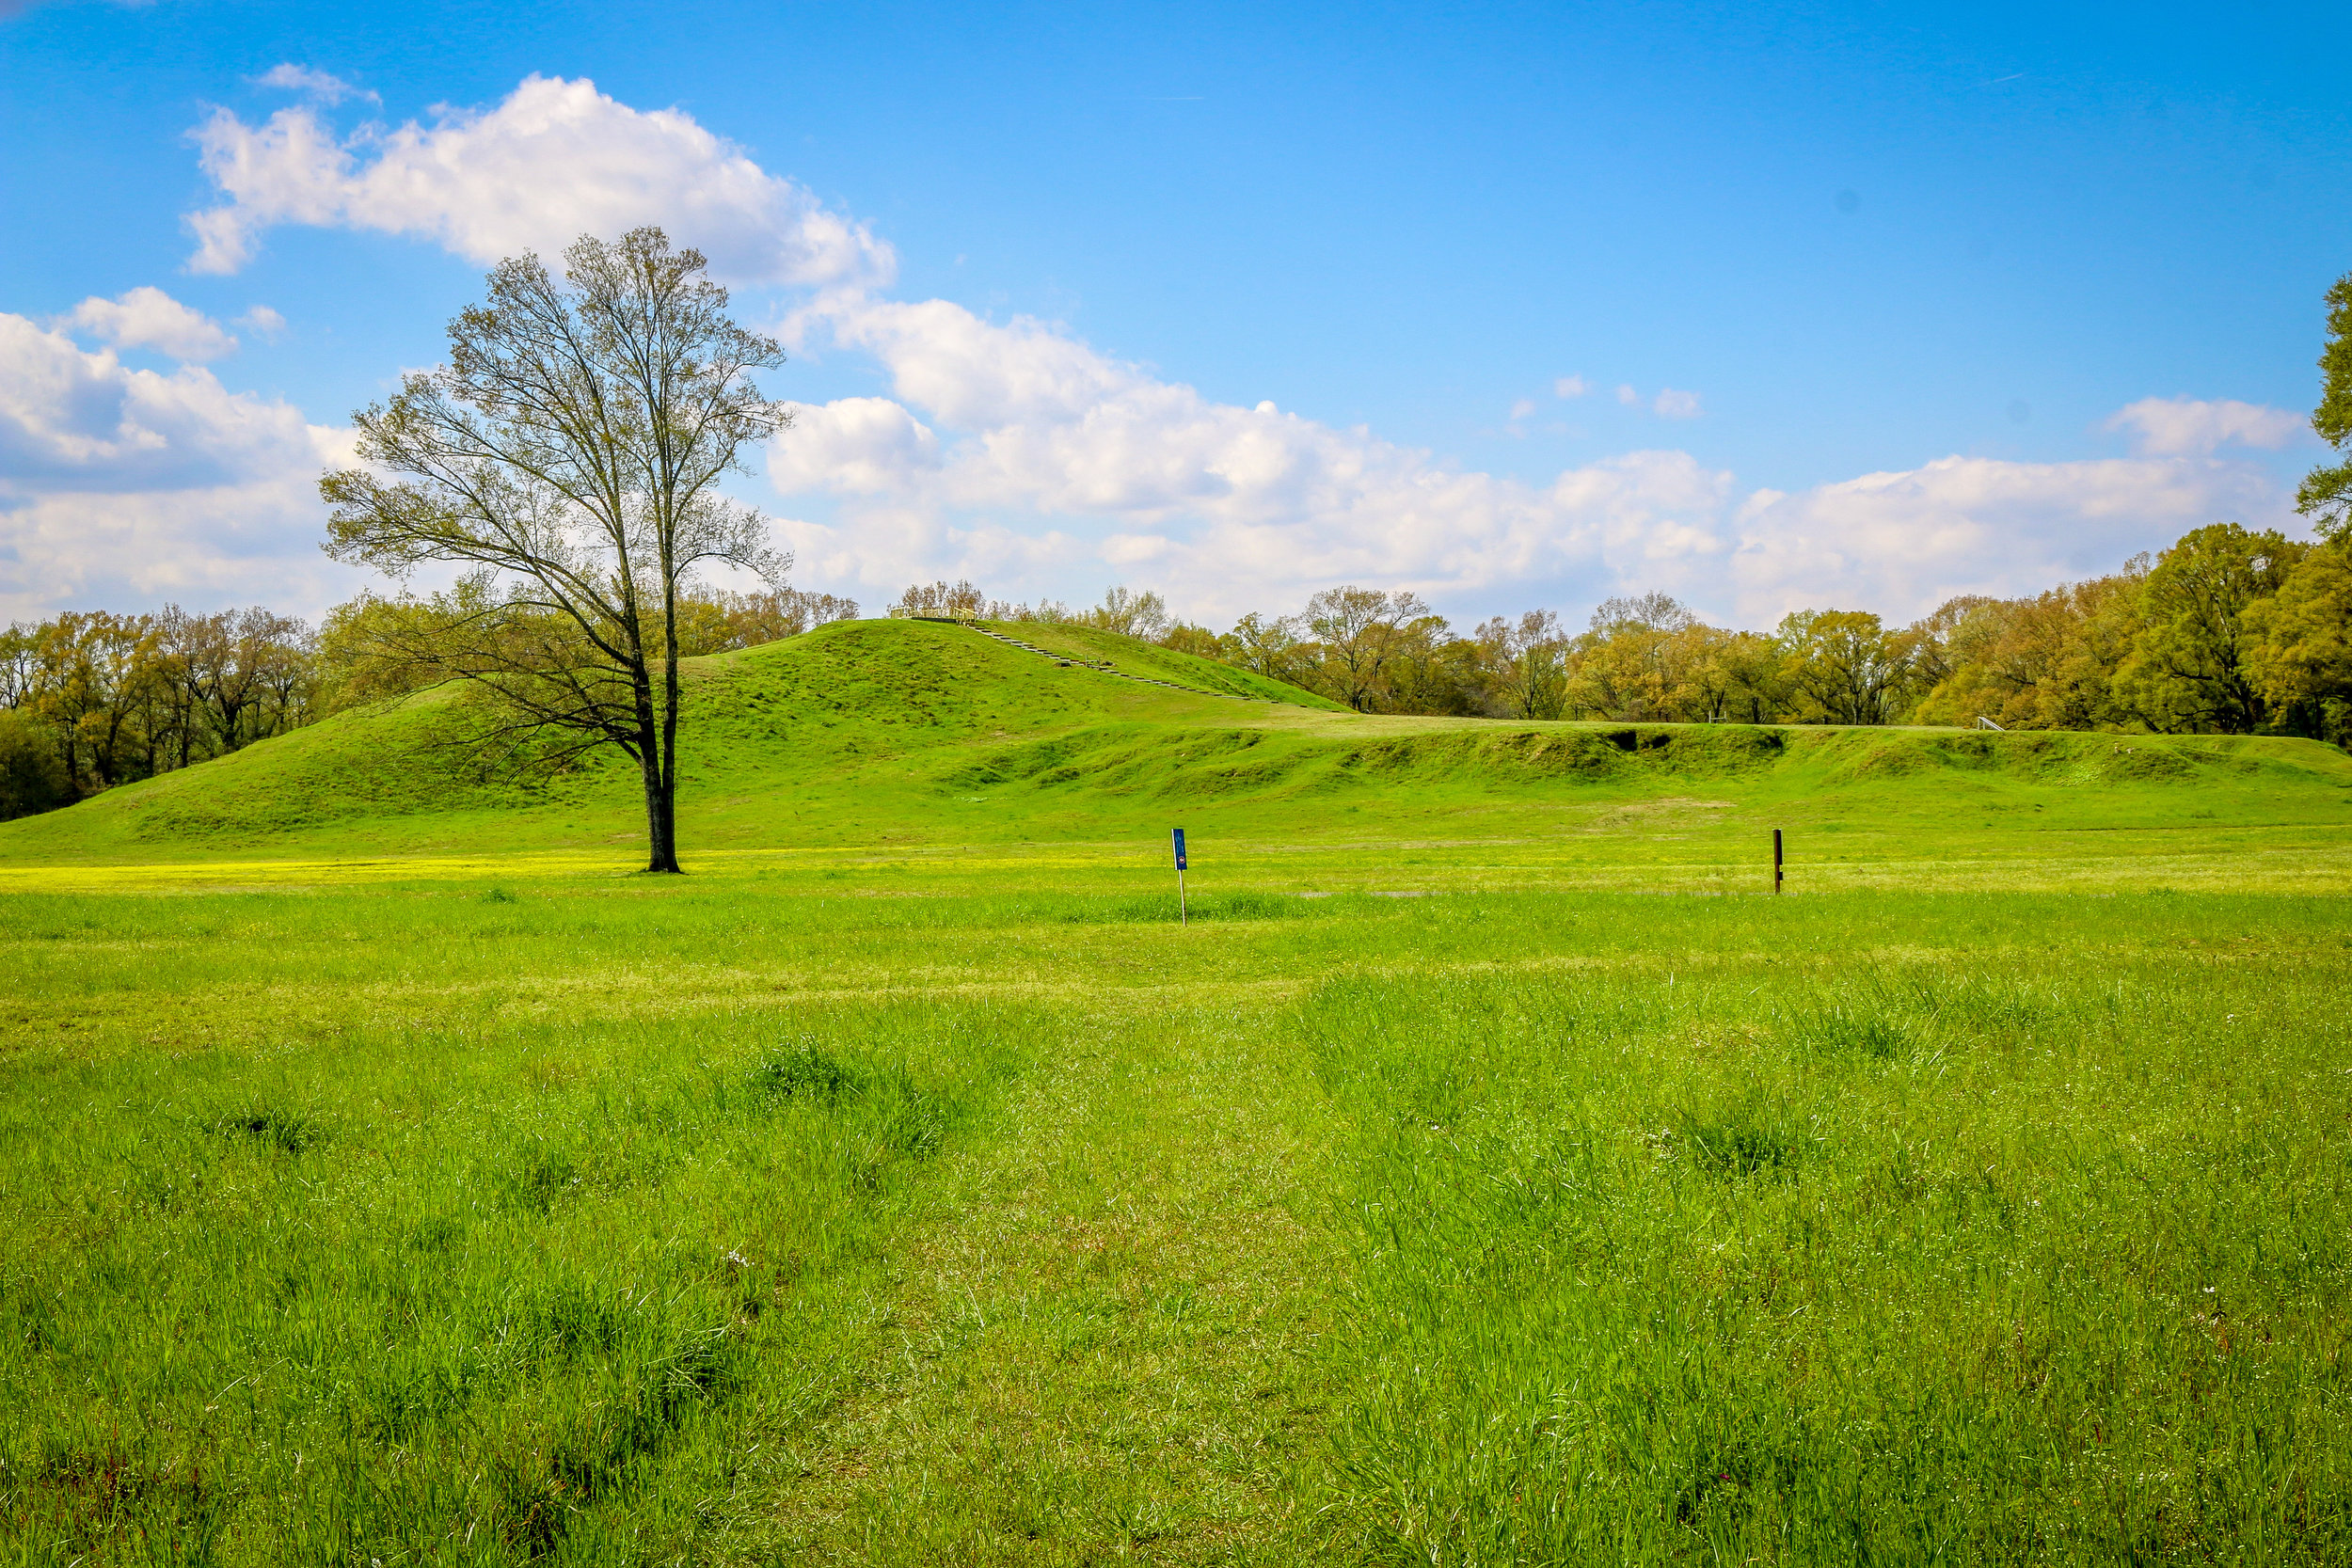 Mound A in Poverty Point World Heritage Site